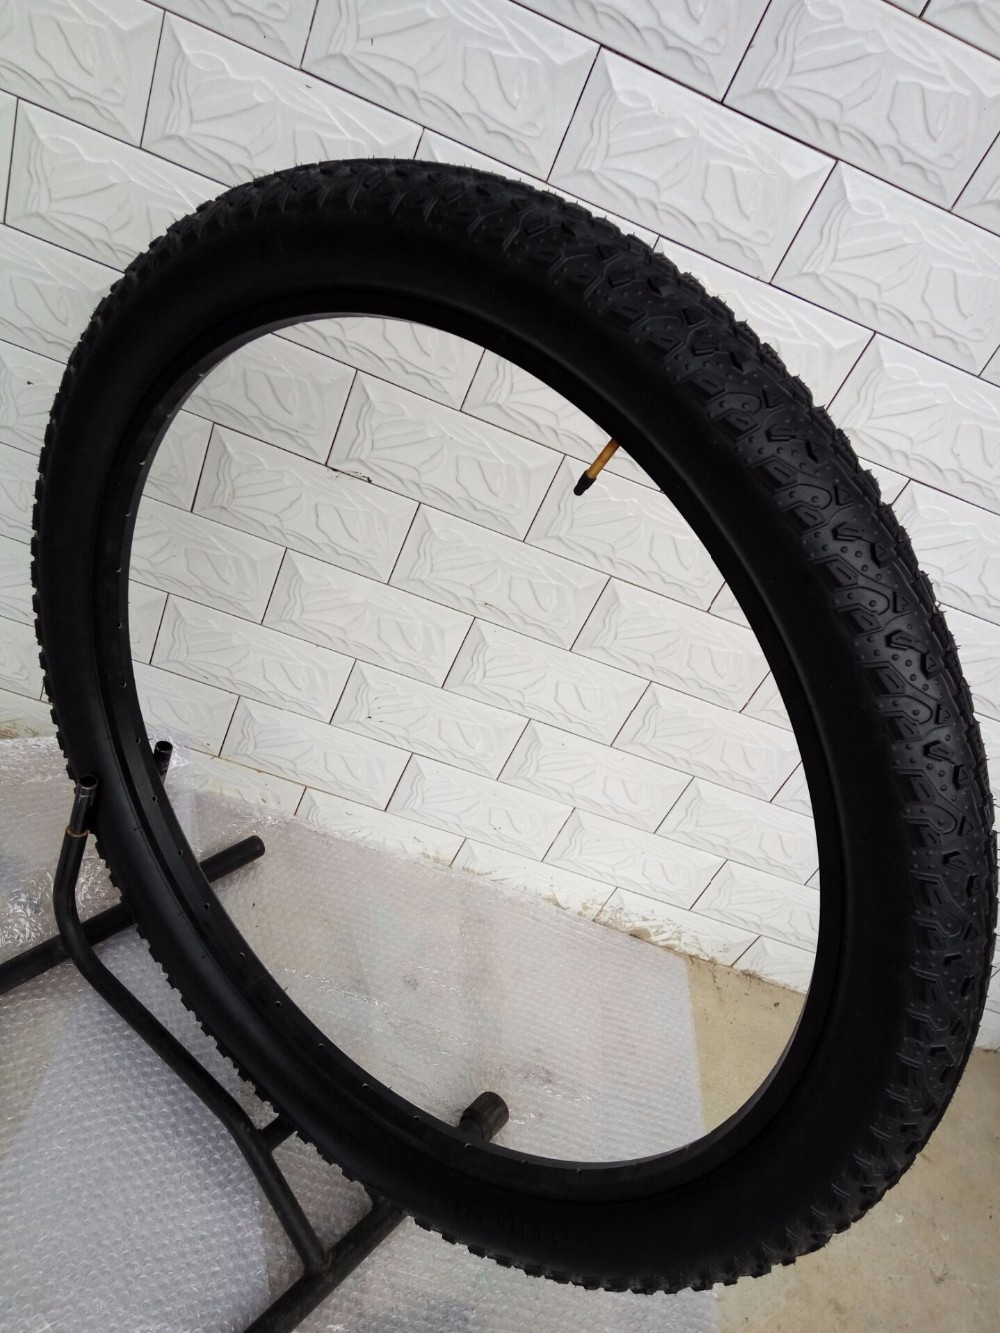 Free shipping original MTB bicycle tires 29er 26er 26*3.0 26*3.0 DH - Cycling